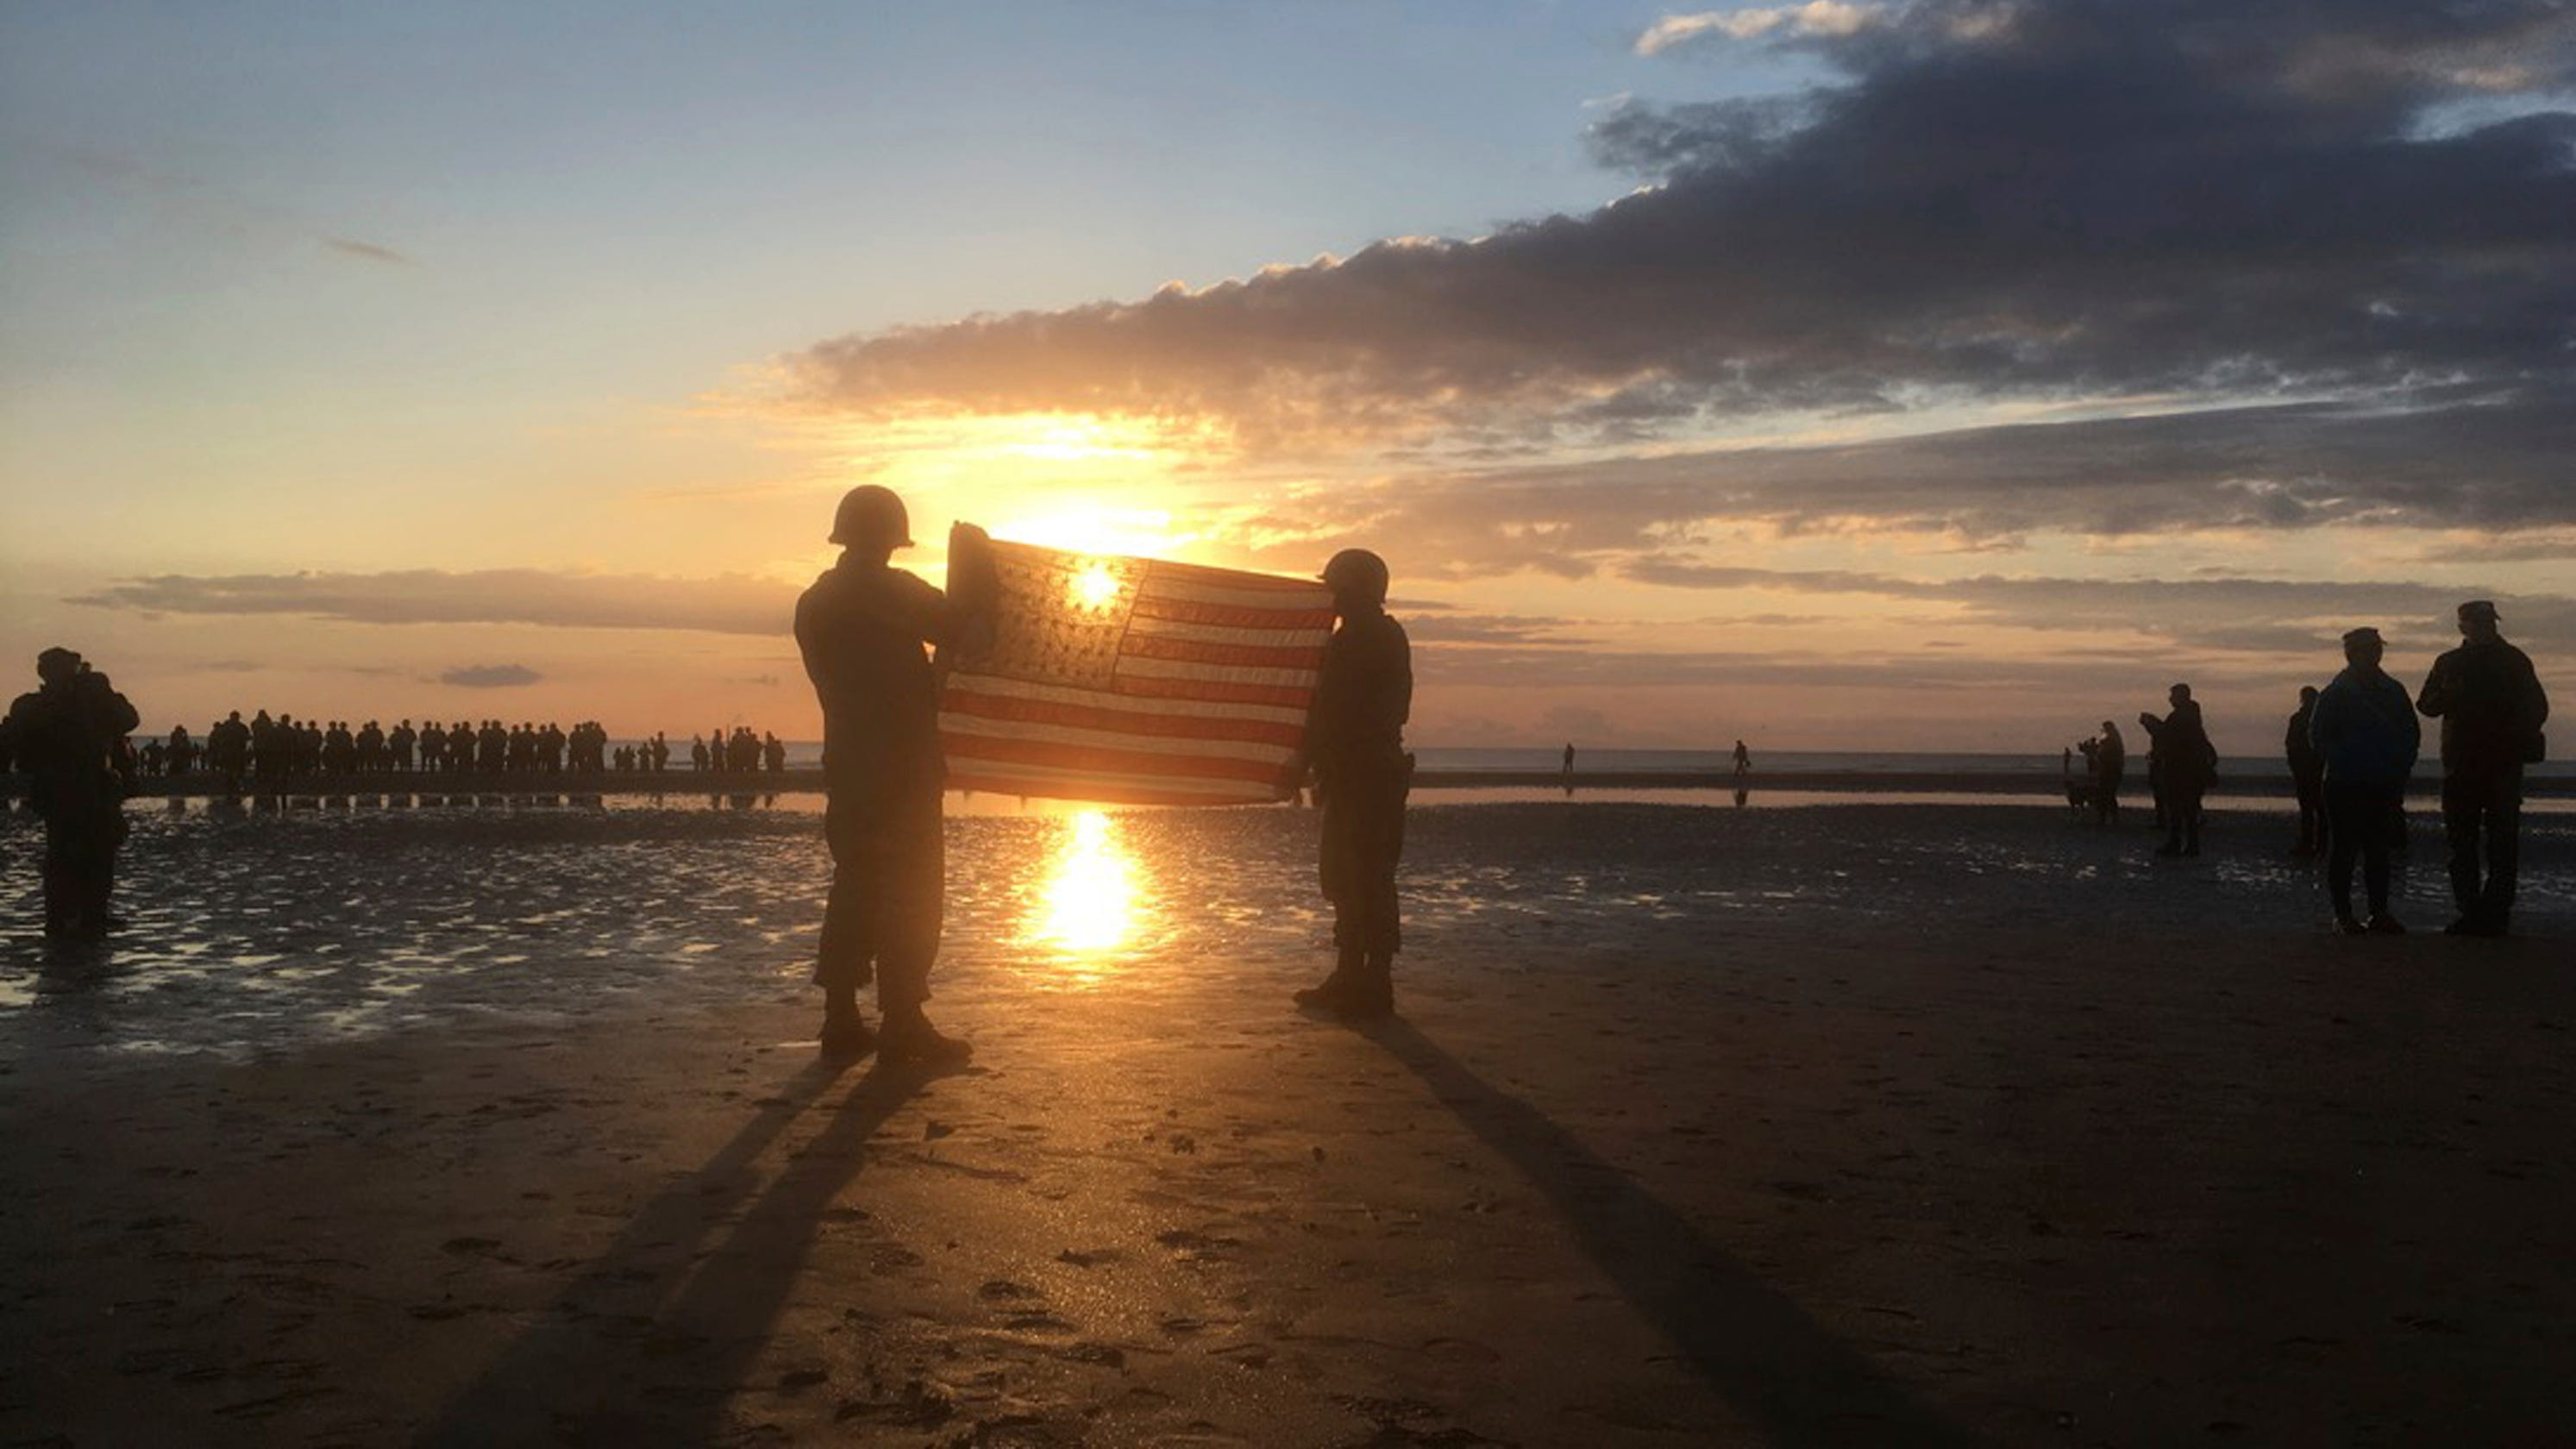 D-Day commemorations mark 75th anniversary of WWII ...  D-Day commemora...